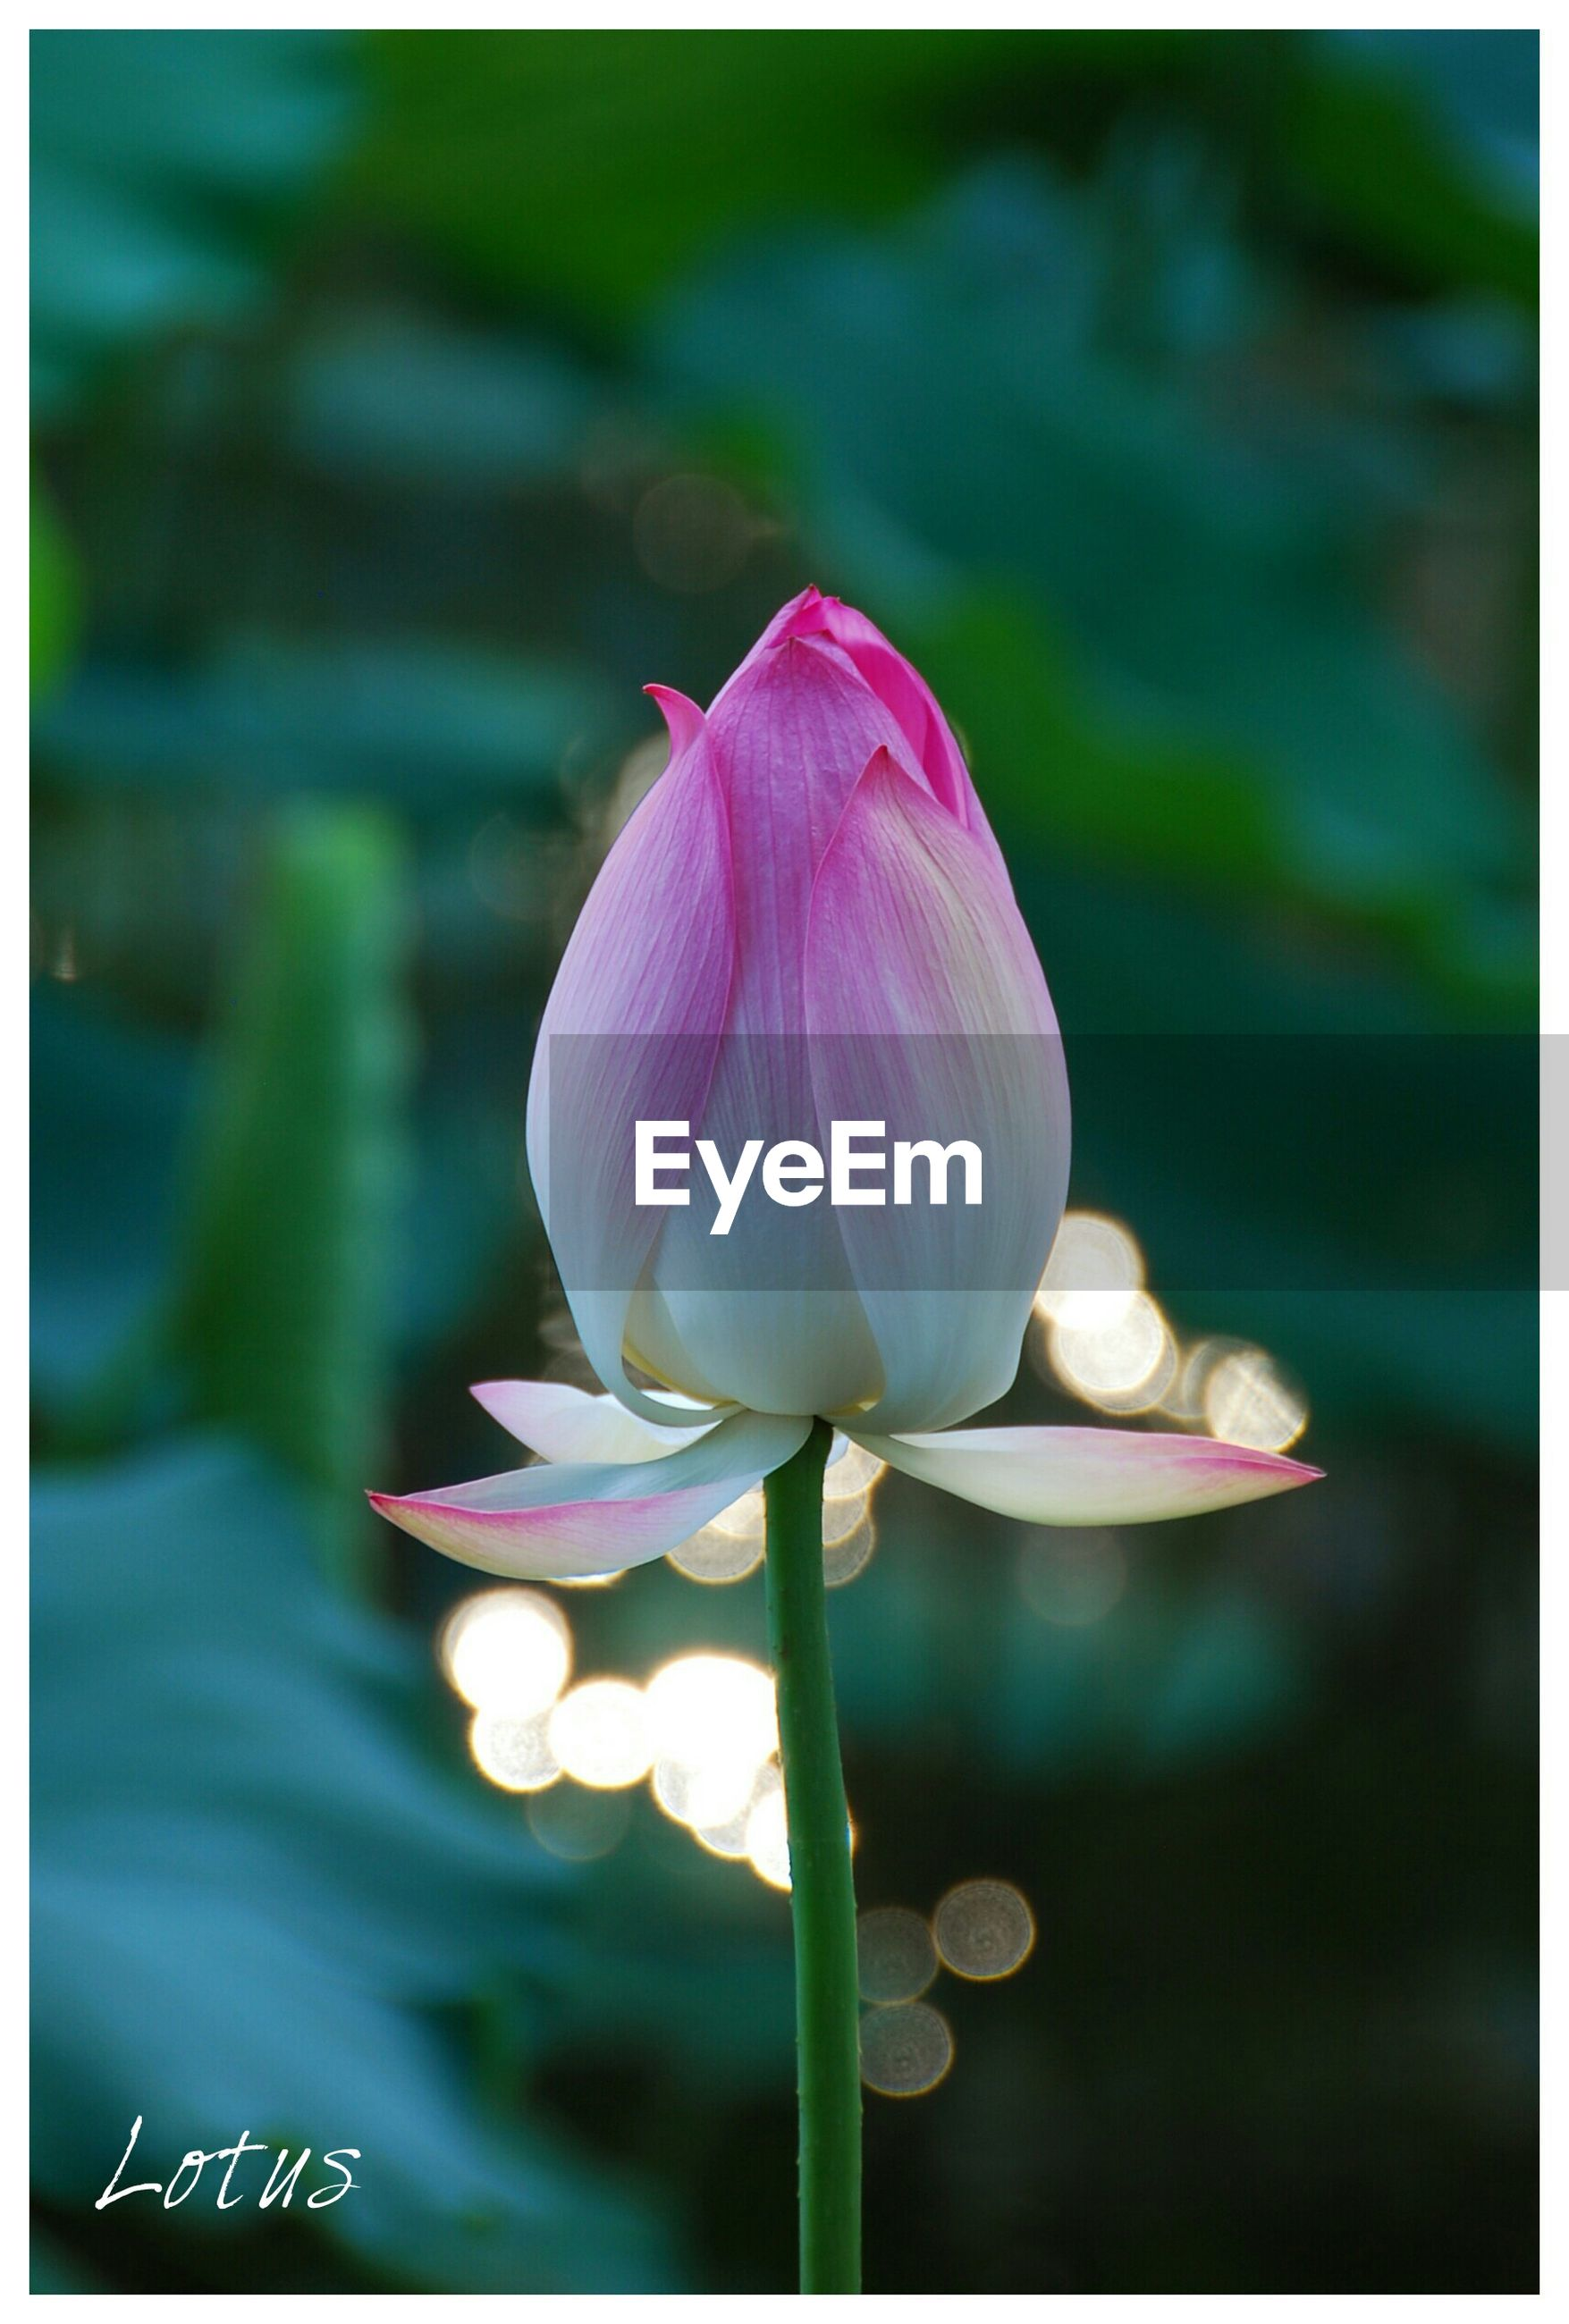 flower, freshness, petal, fragility, growth, flower head, beauty in nature, close-up, pink color, nature, focus on foreground, bud, transfer print, plant, blooming, stem, single flower, in bloom, purple, auto post production filter